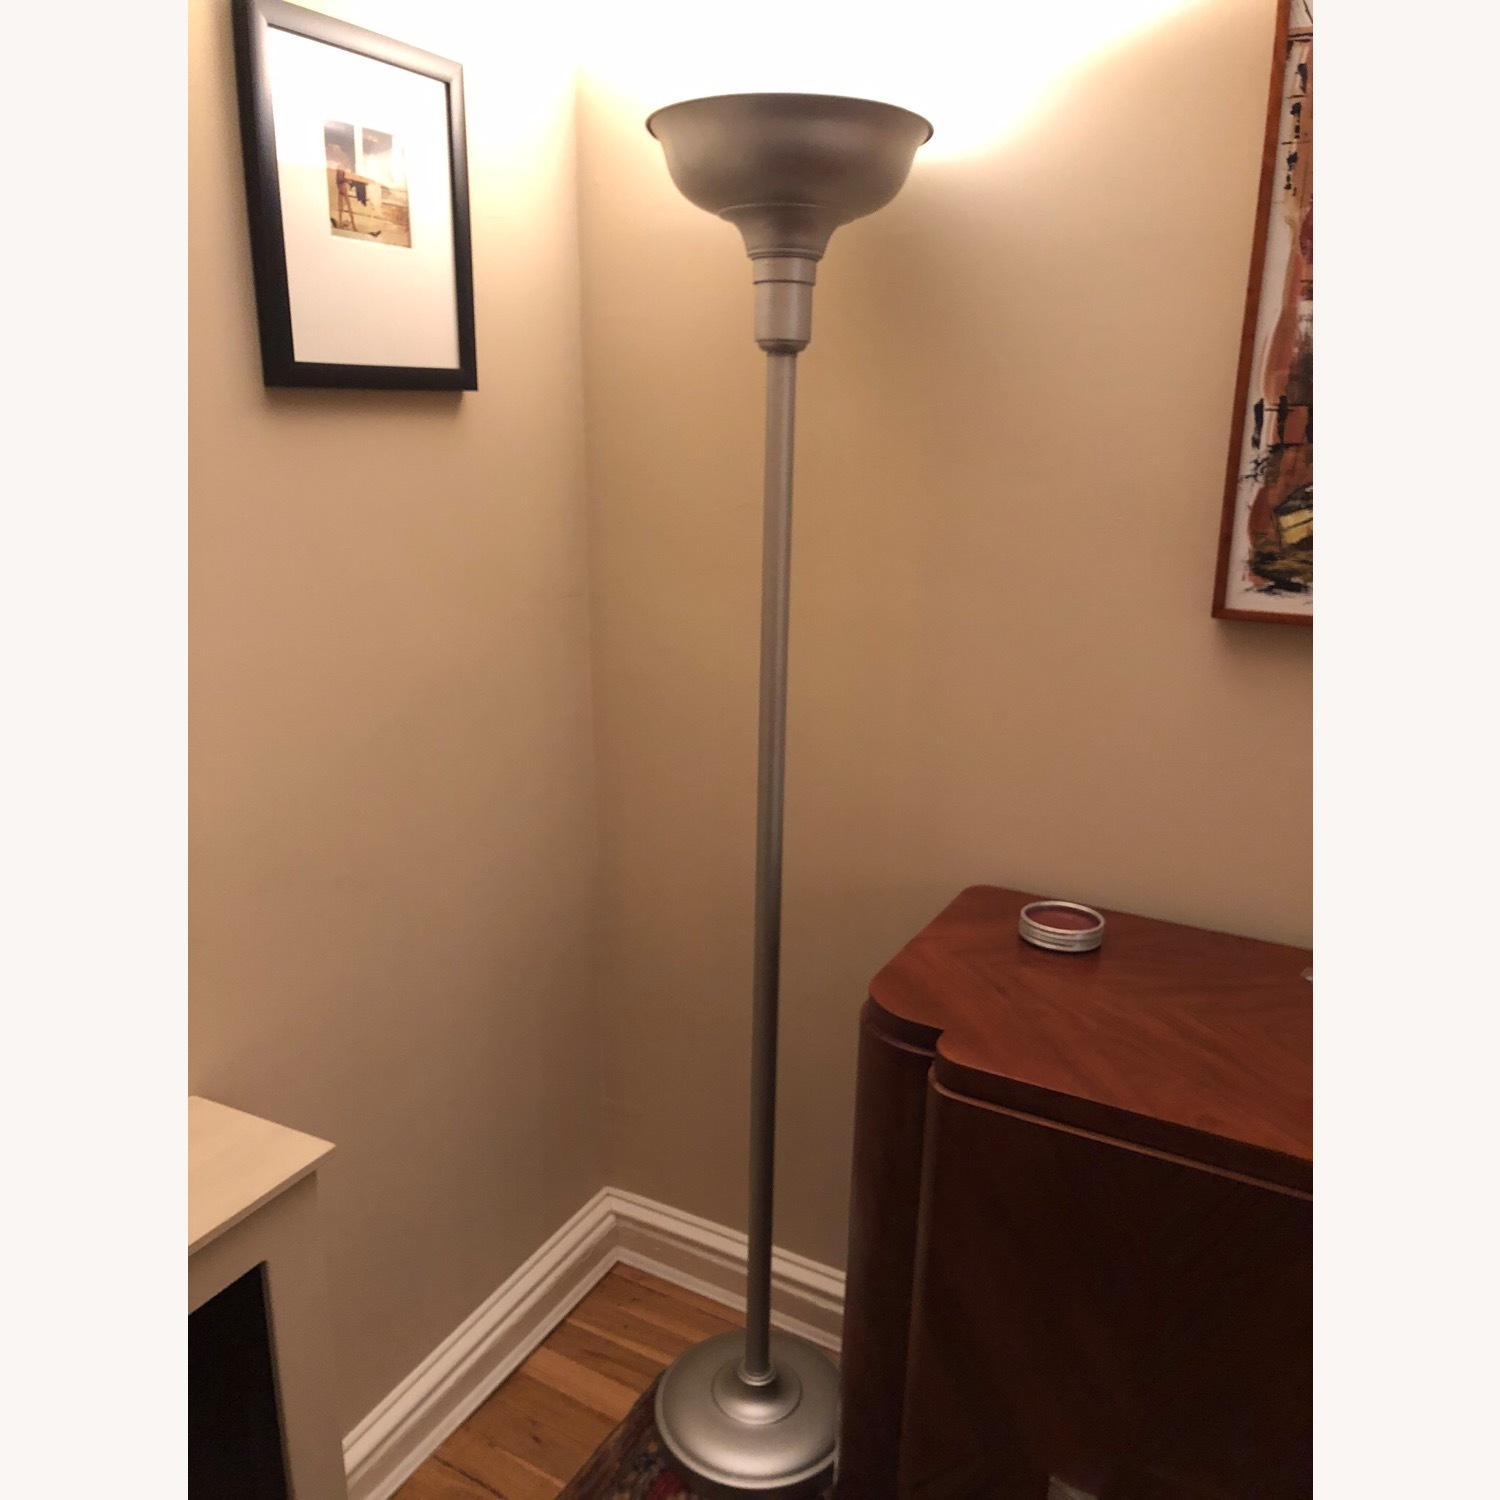 Professionally Restored Art Deco Floor Lamp - image-1